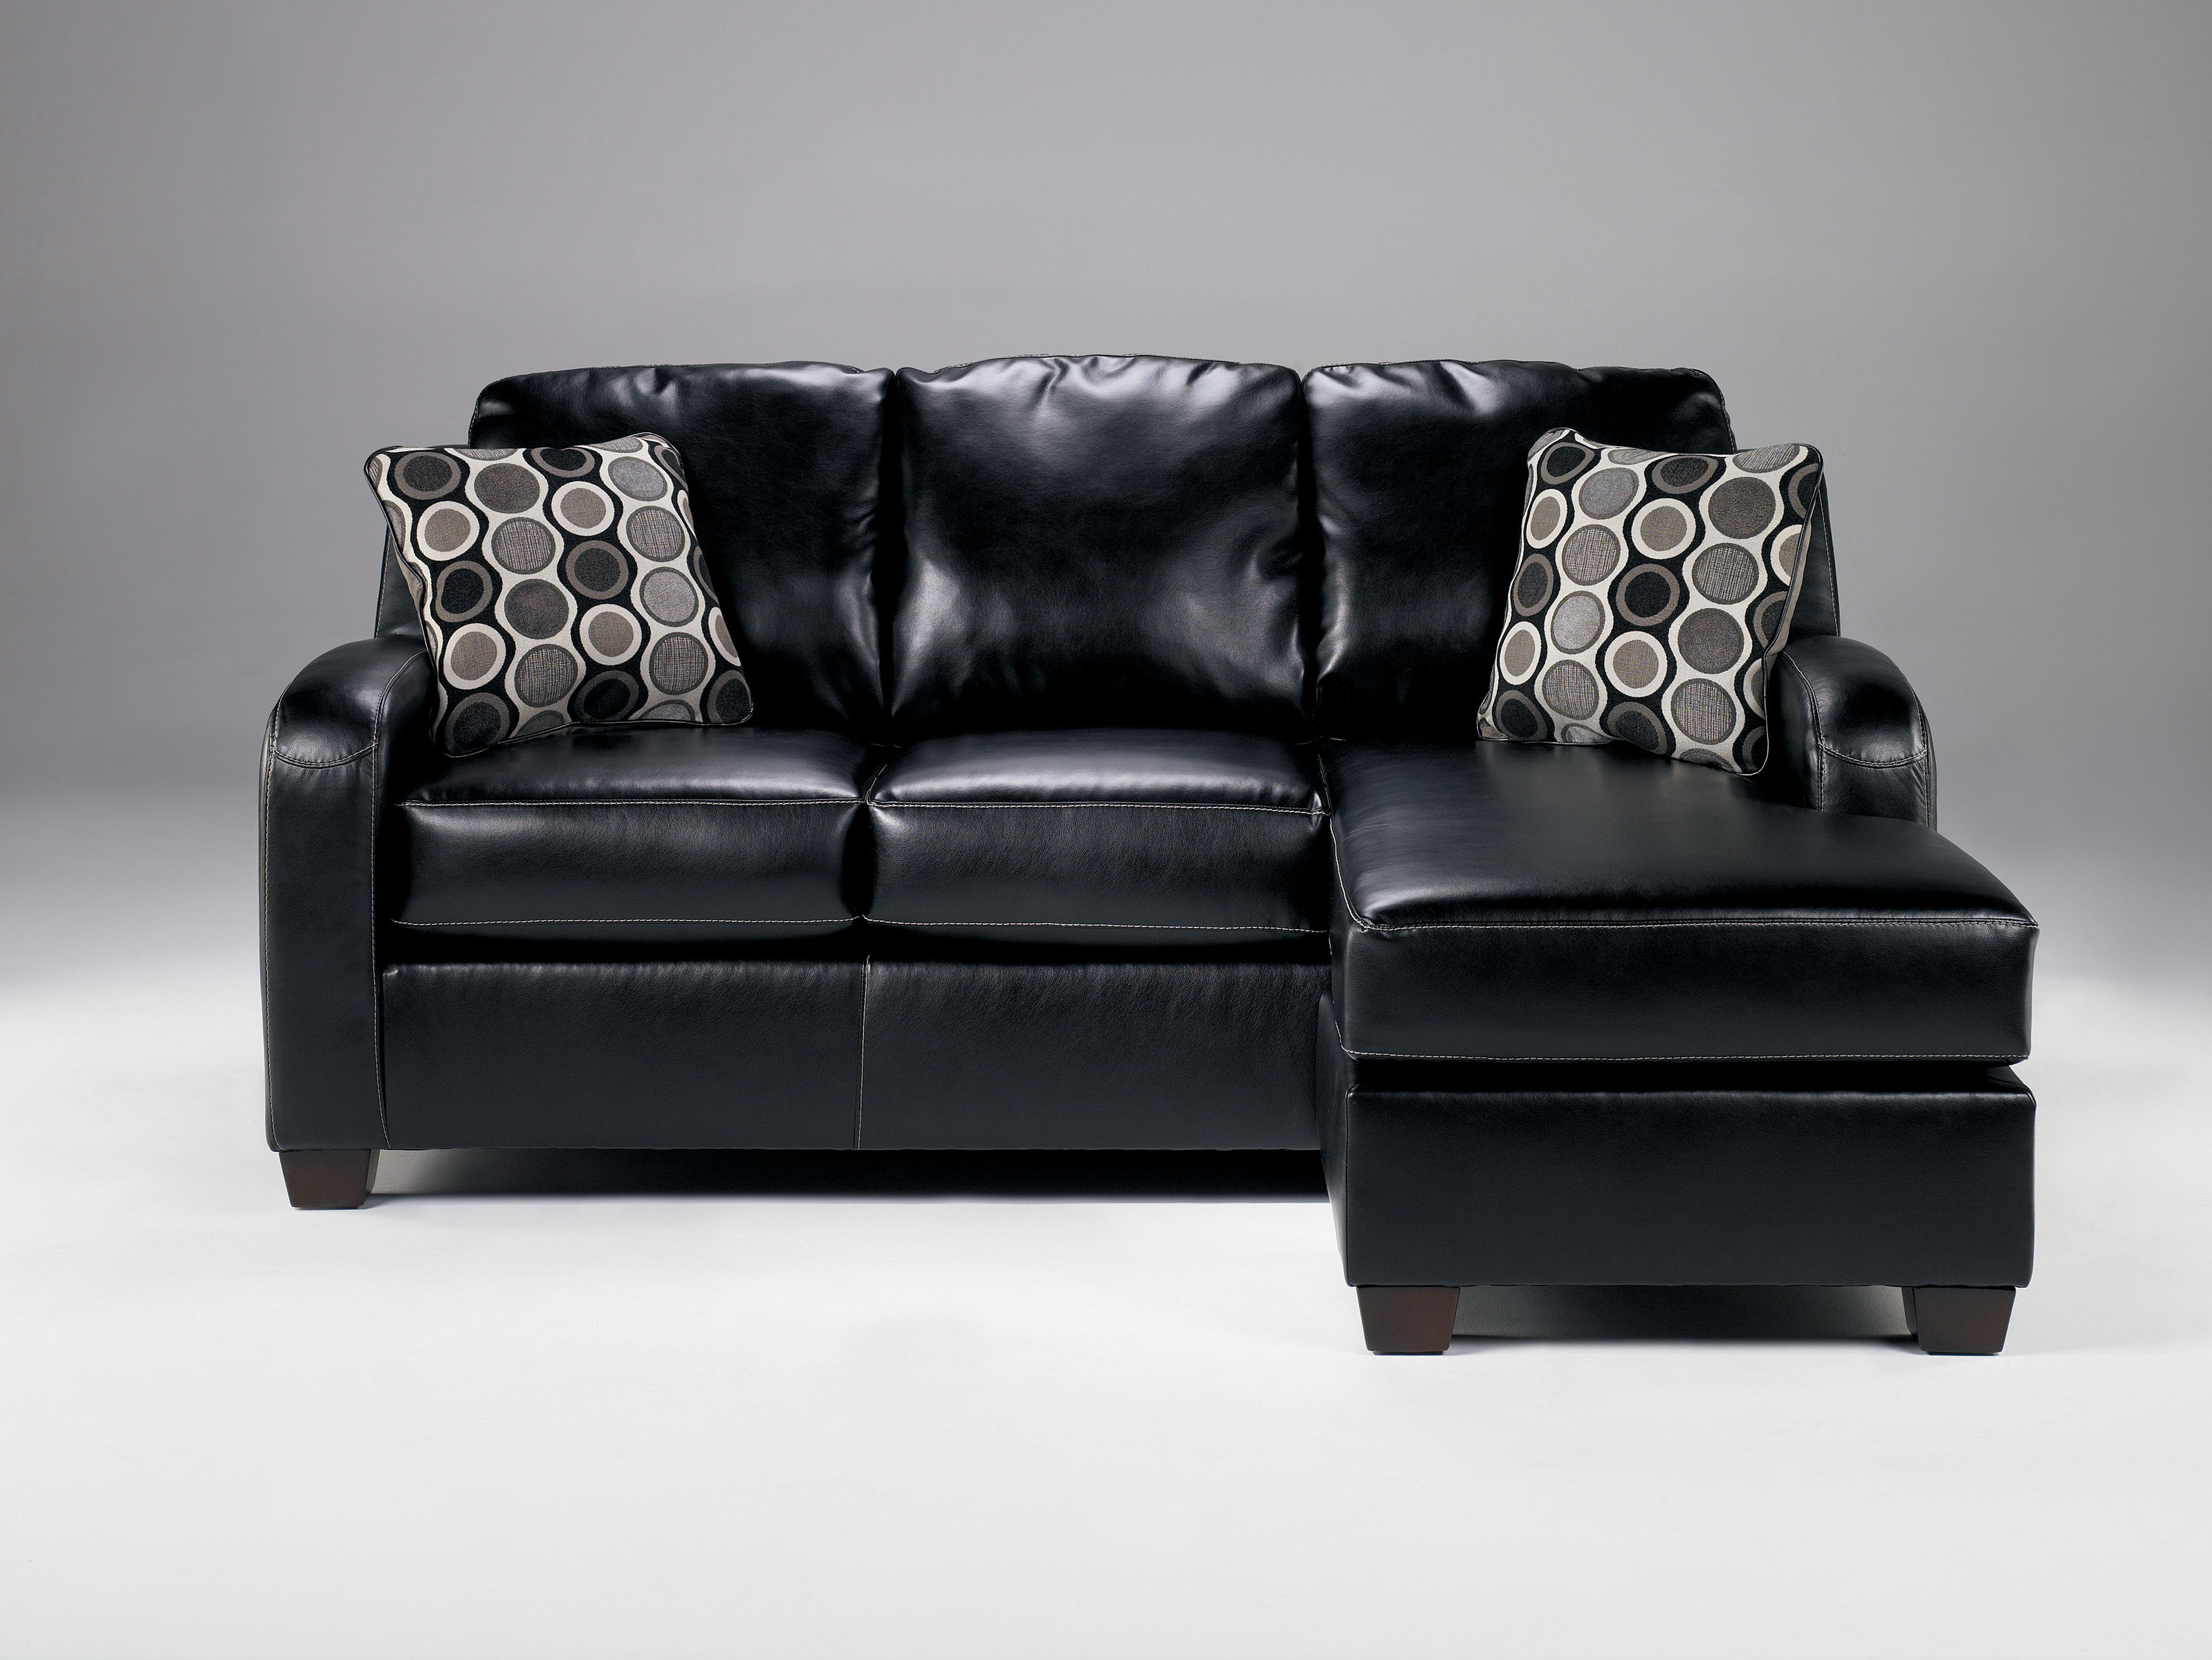 Devin durablend black sofa chaise the classy home for Ashley durablend chaise